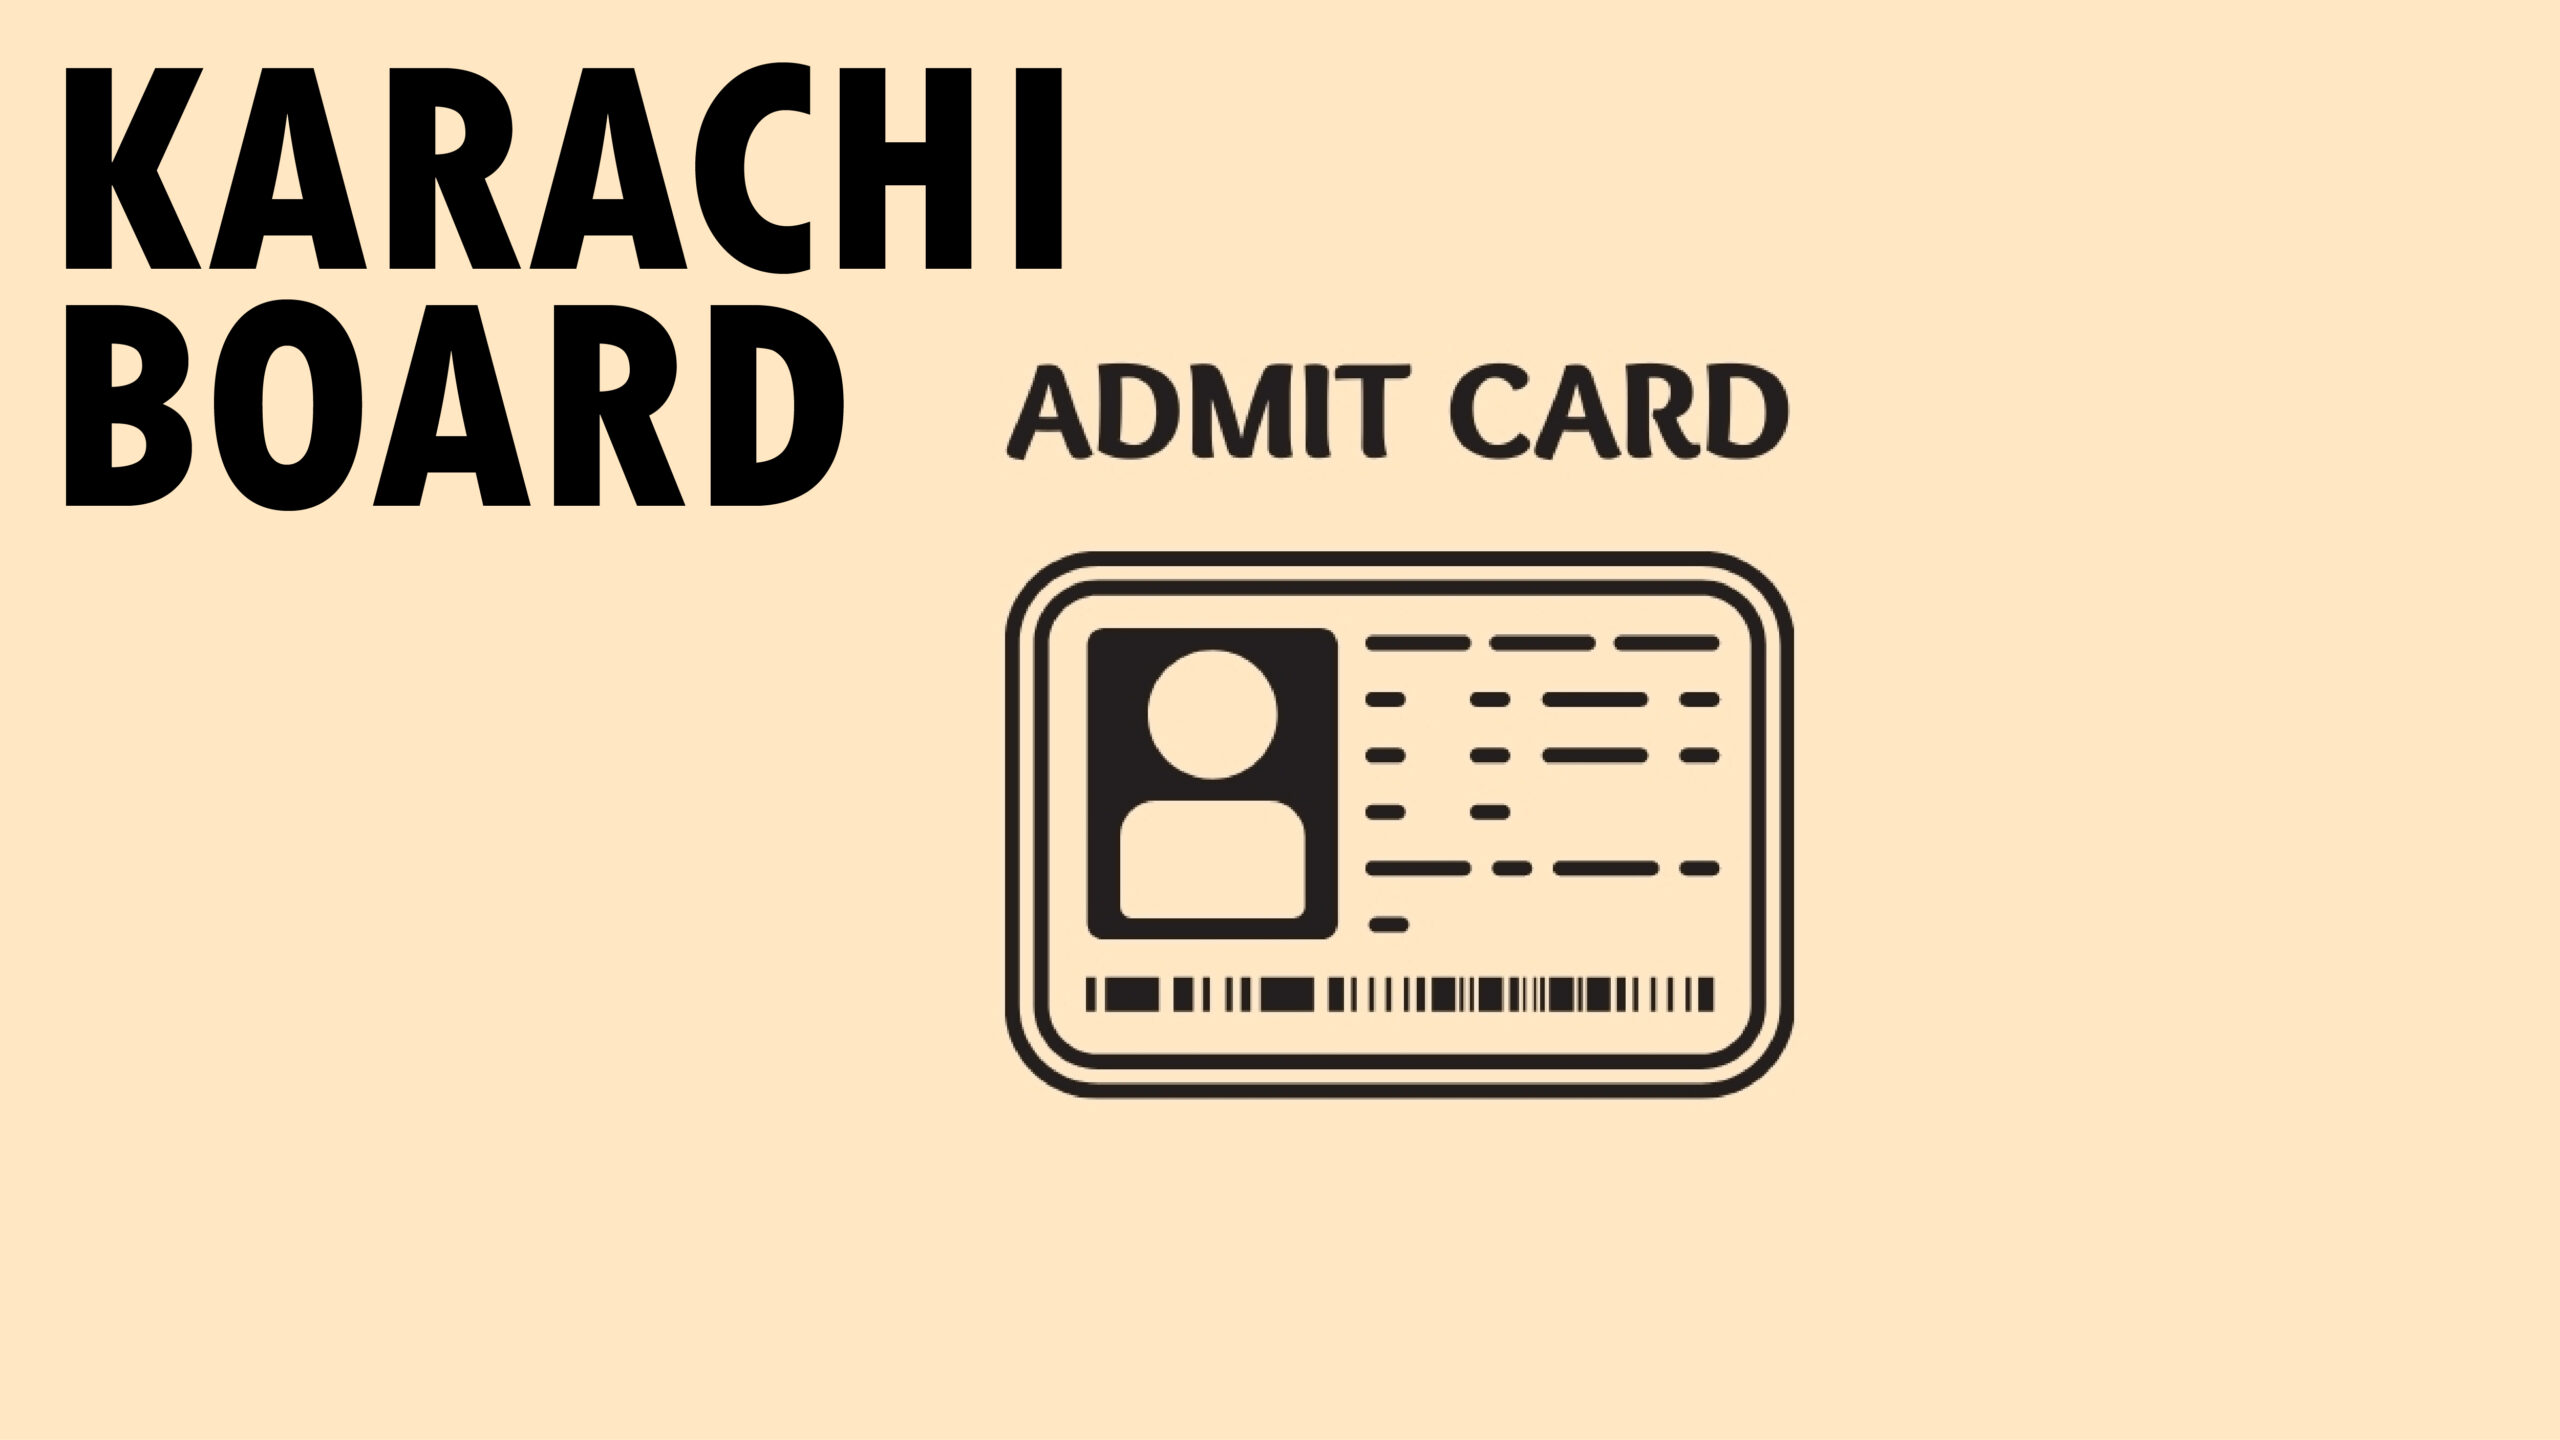 As examination nears, Karachi board releases admit cards for class 9th,10th